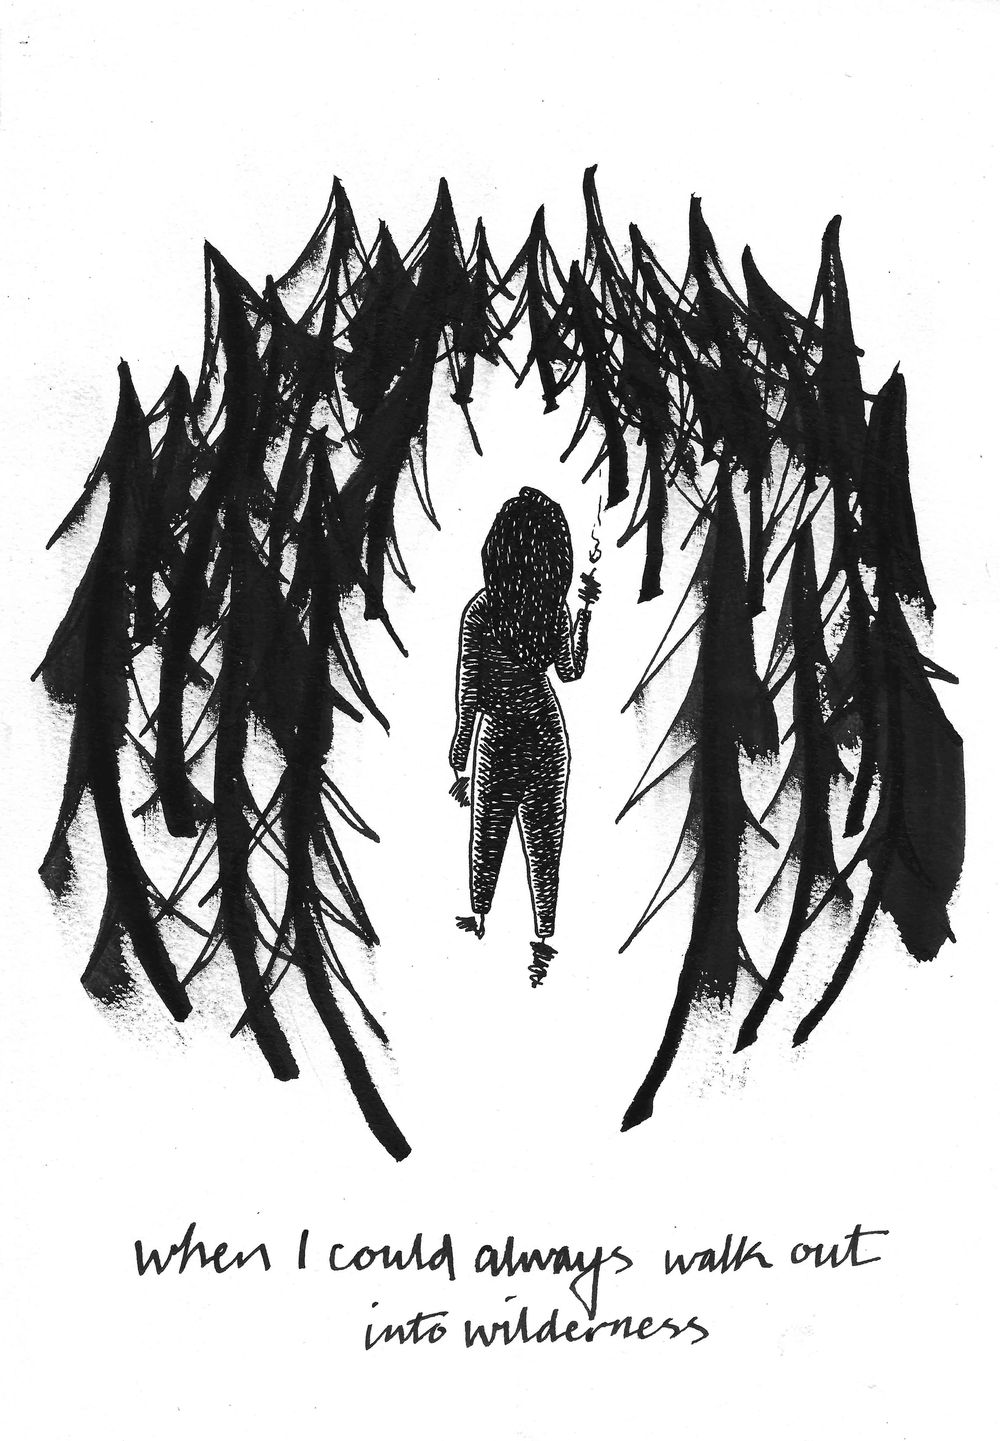 Illustrating with Ink - image 8 - student project